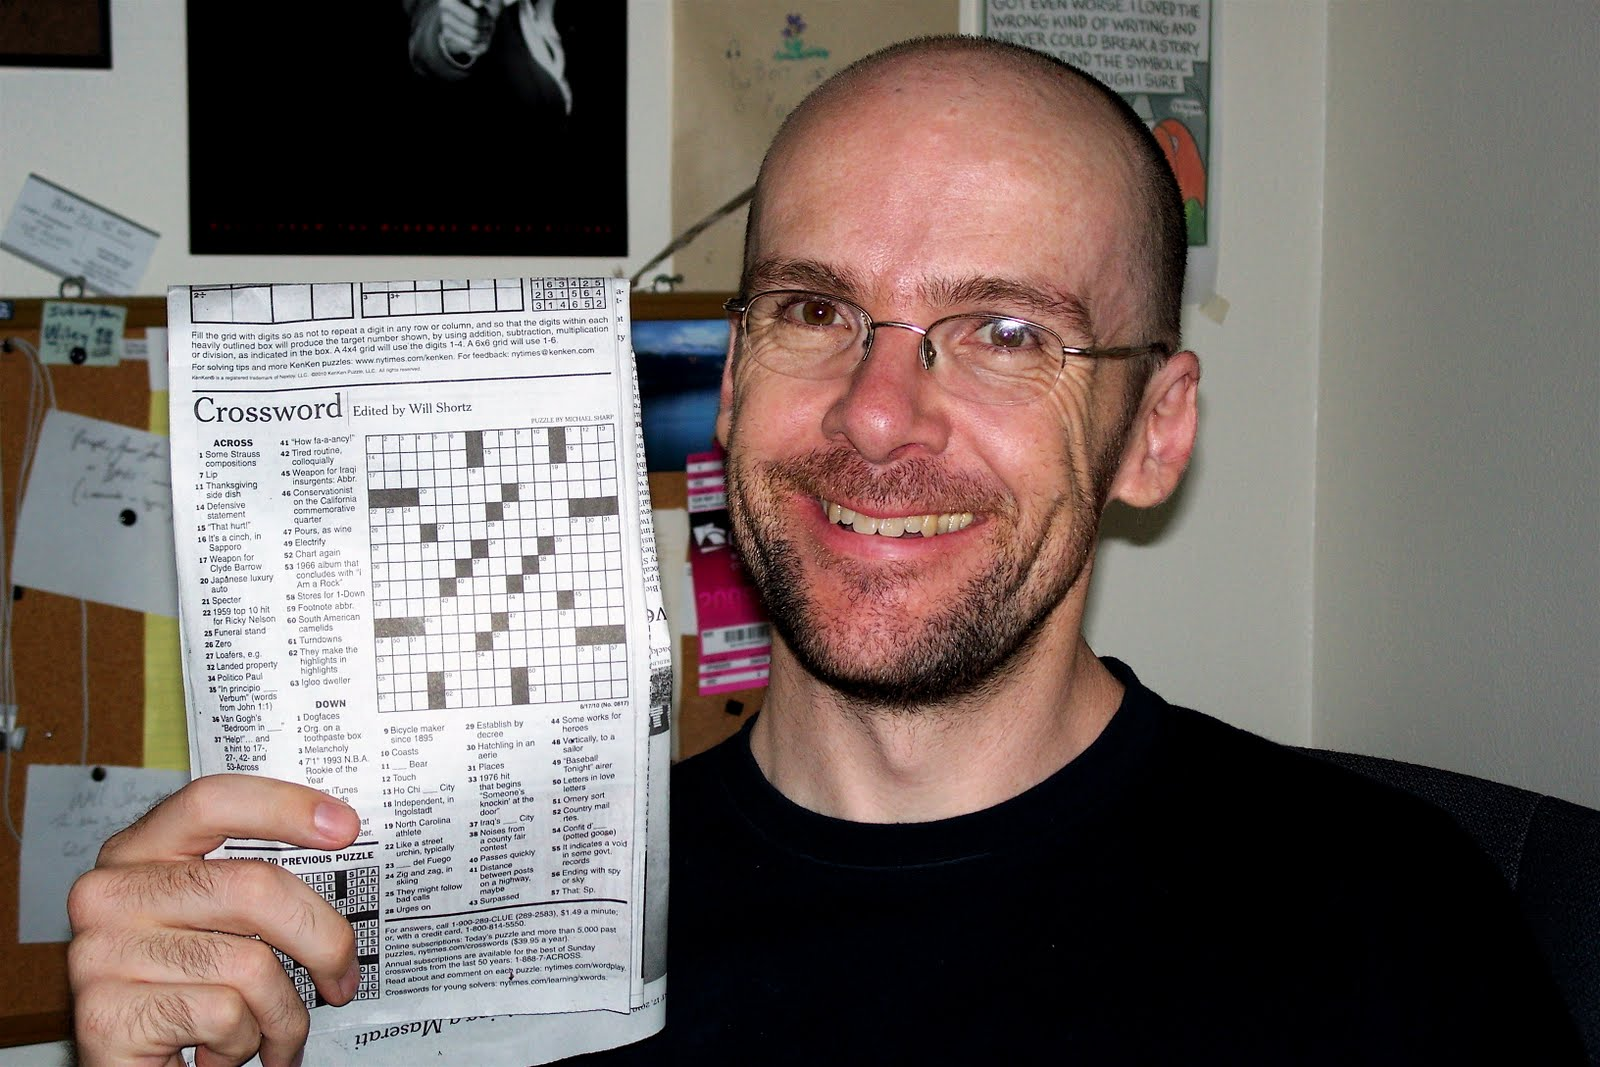 Wife crossword puzzles and anal sex 2